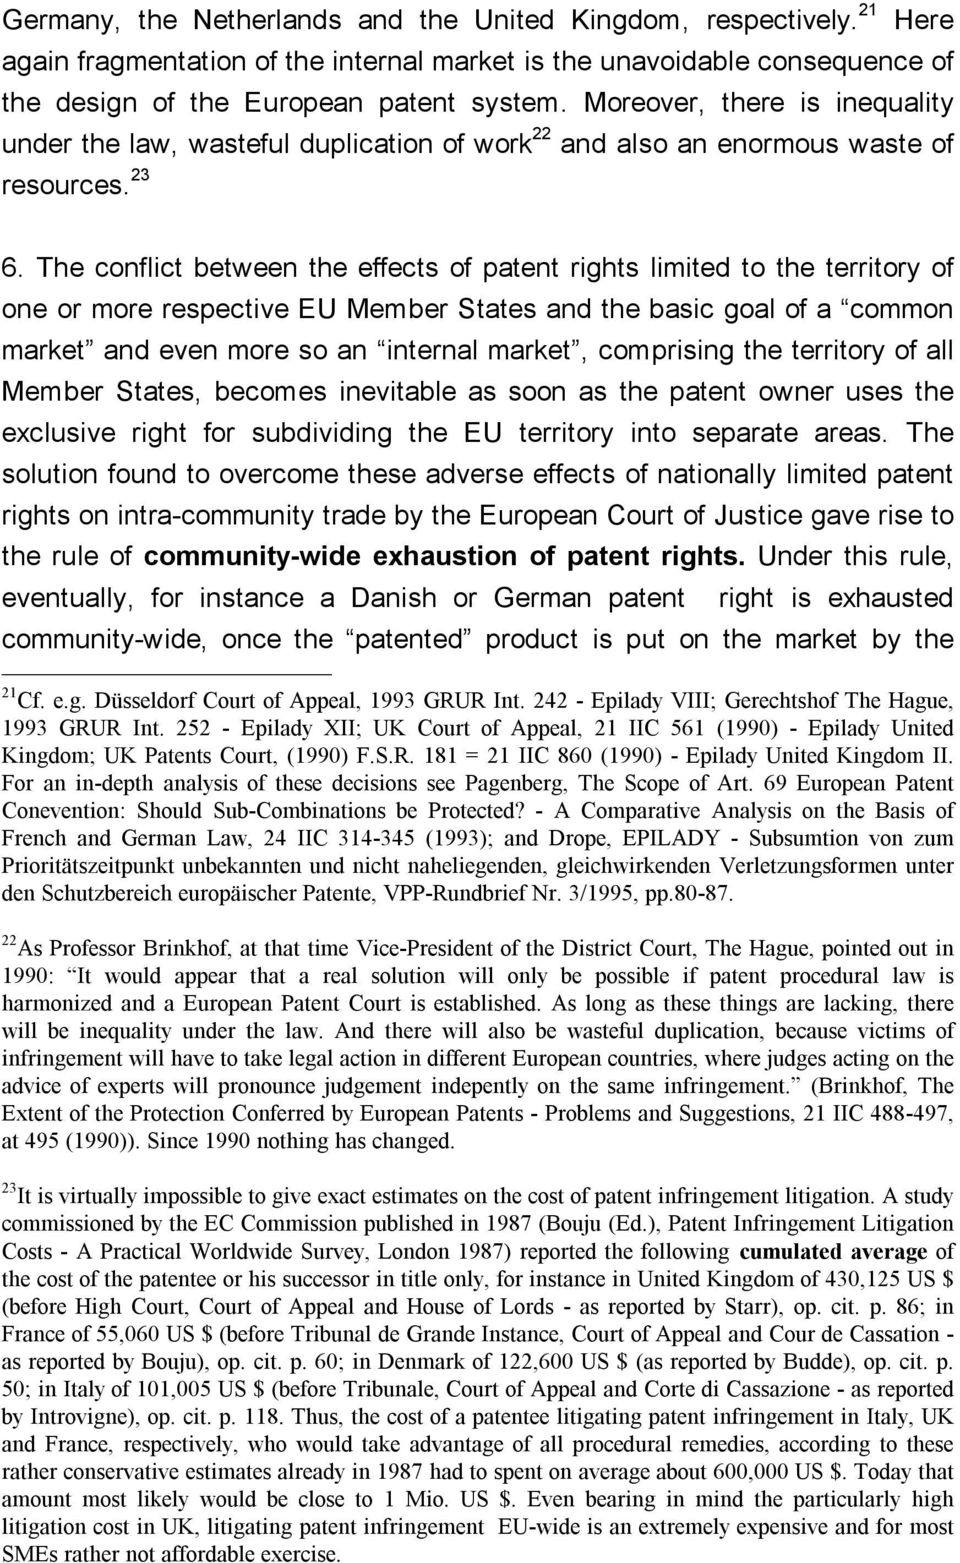 The conflict between the effects of patent rights limited to the territory of one or more respective EU Member States and the basic goal of a common market and even more so an internal market,